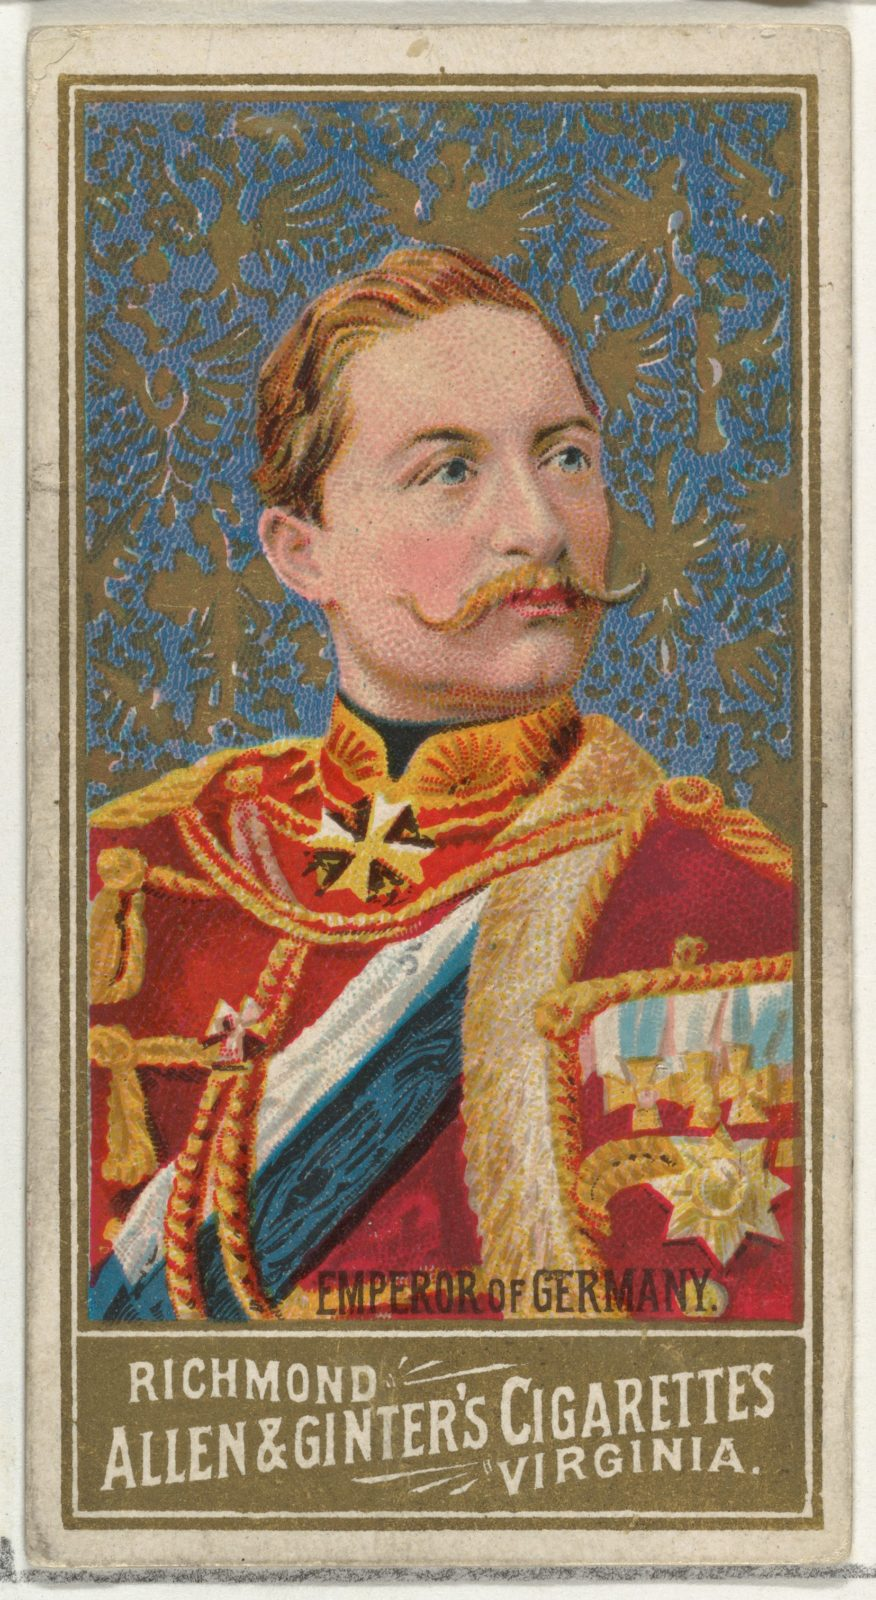 Emperor of Germany, from World's Sovereigns series (N34) for Allen & Ginter Cigarettes